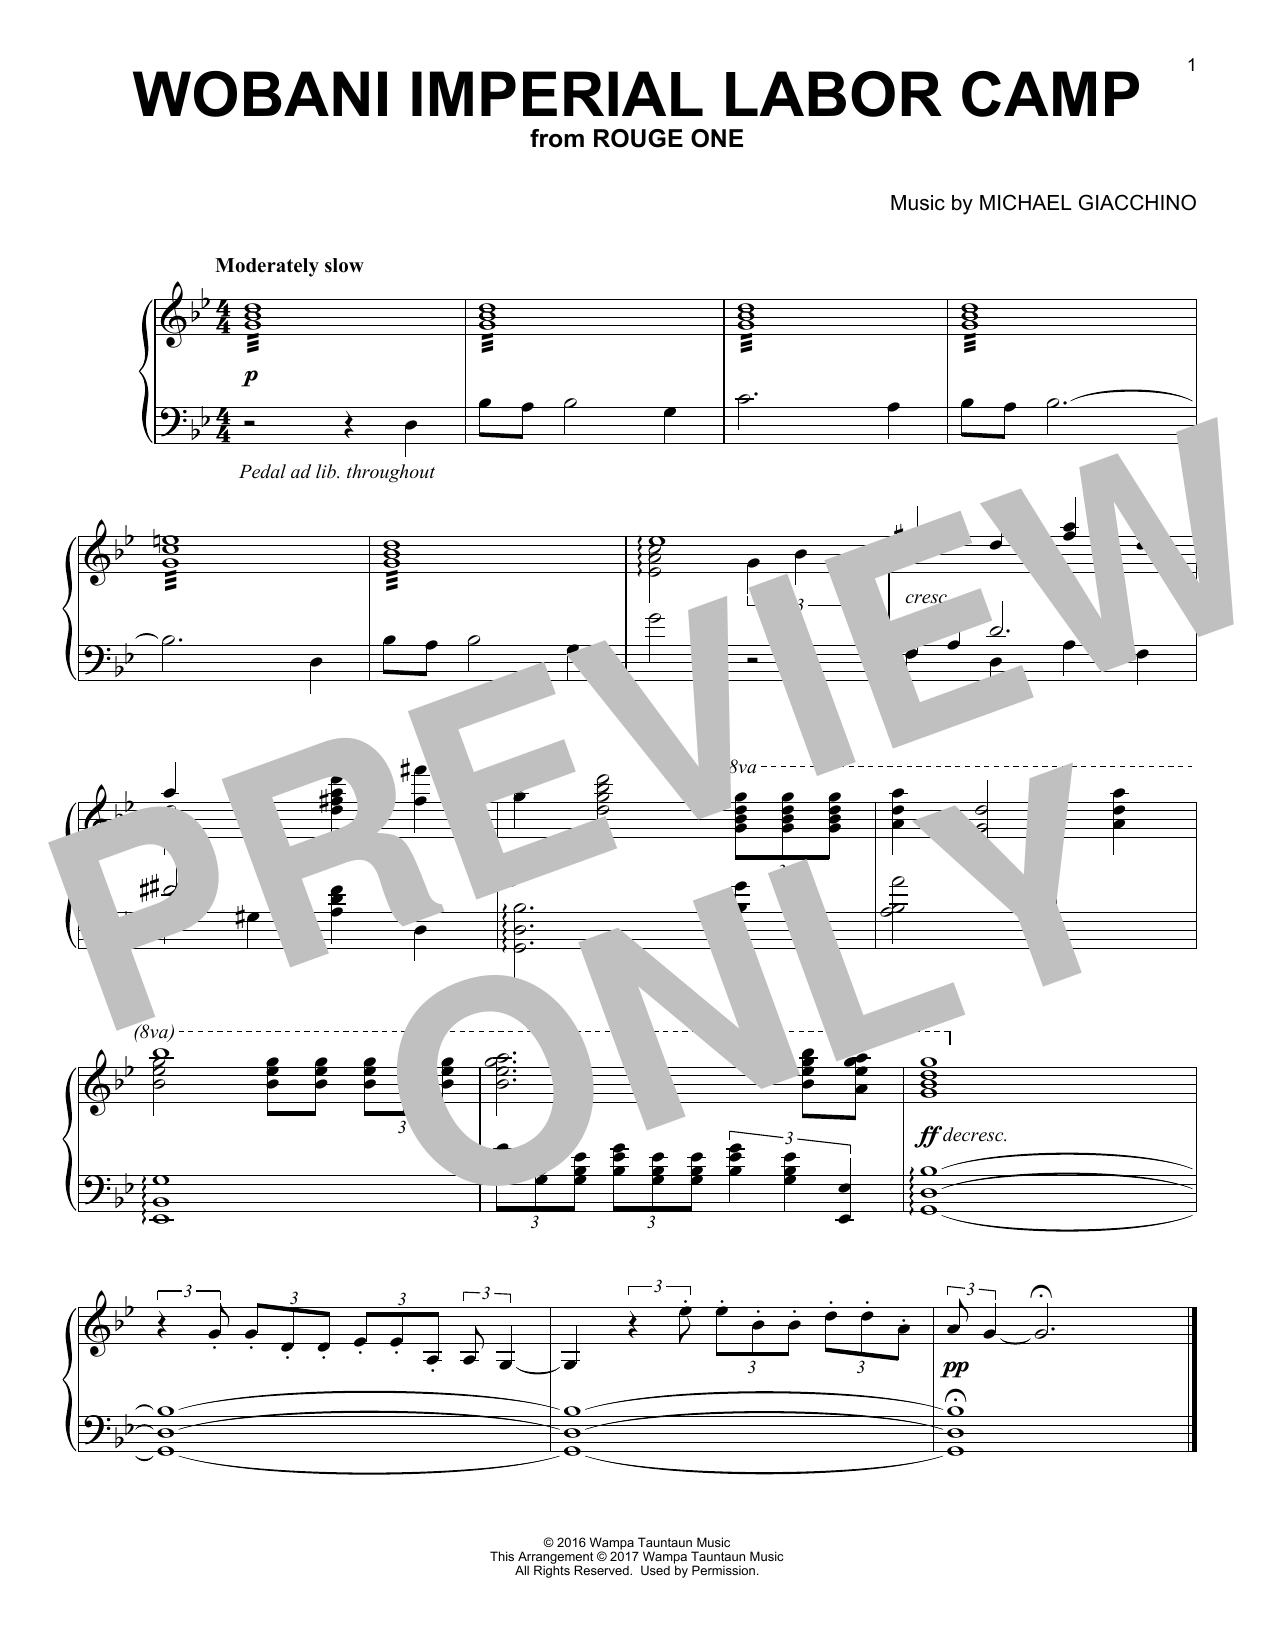 Michael Giacchino Wobani Imperial Labor Camp sheet music notes and chords. Download Printable PDF.